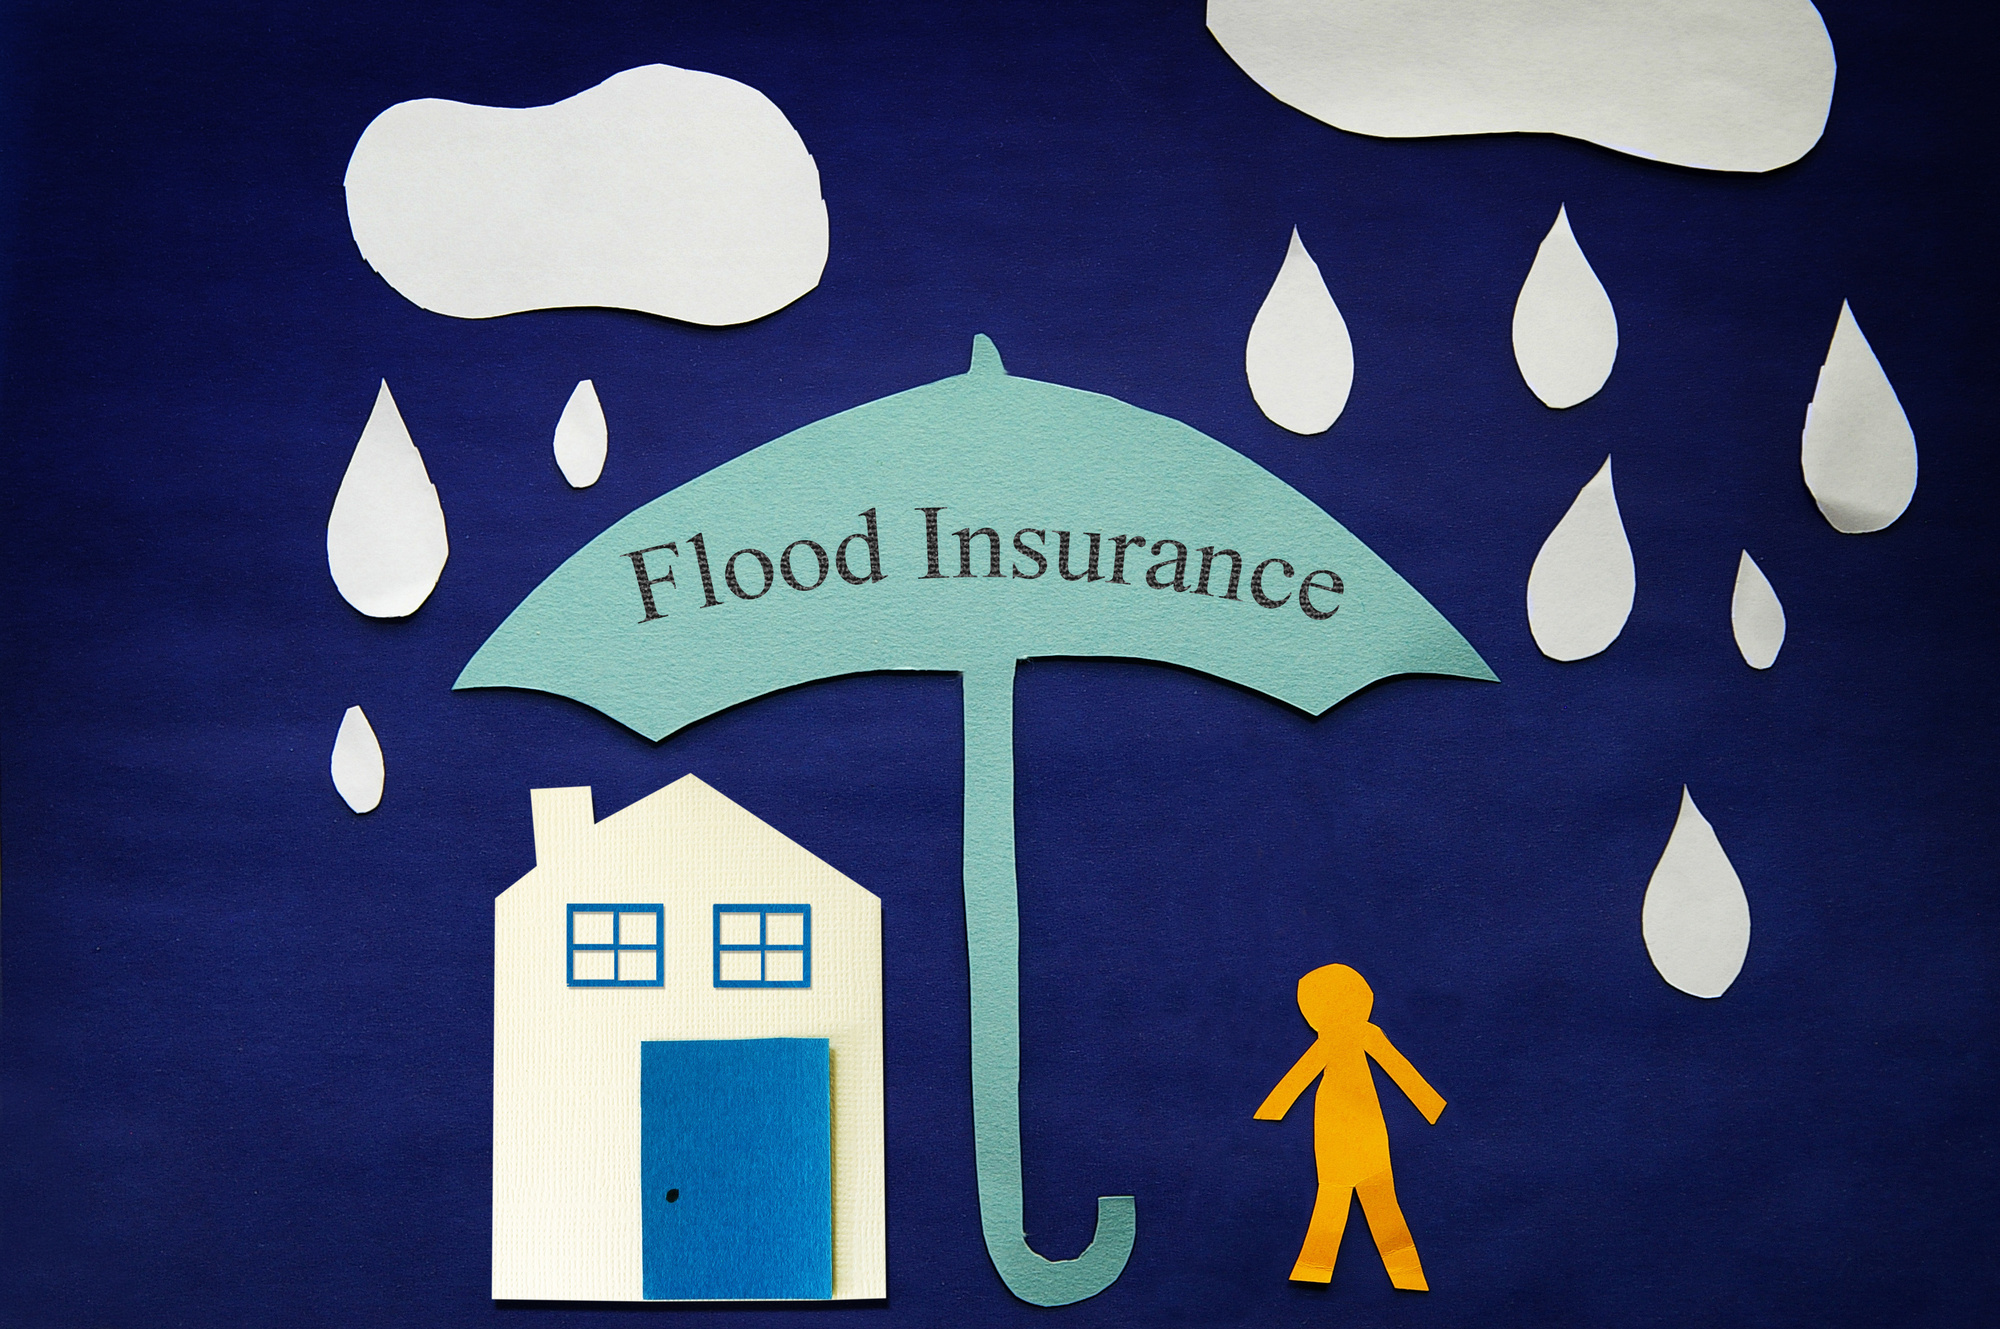 Flood Insurance Visualized